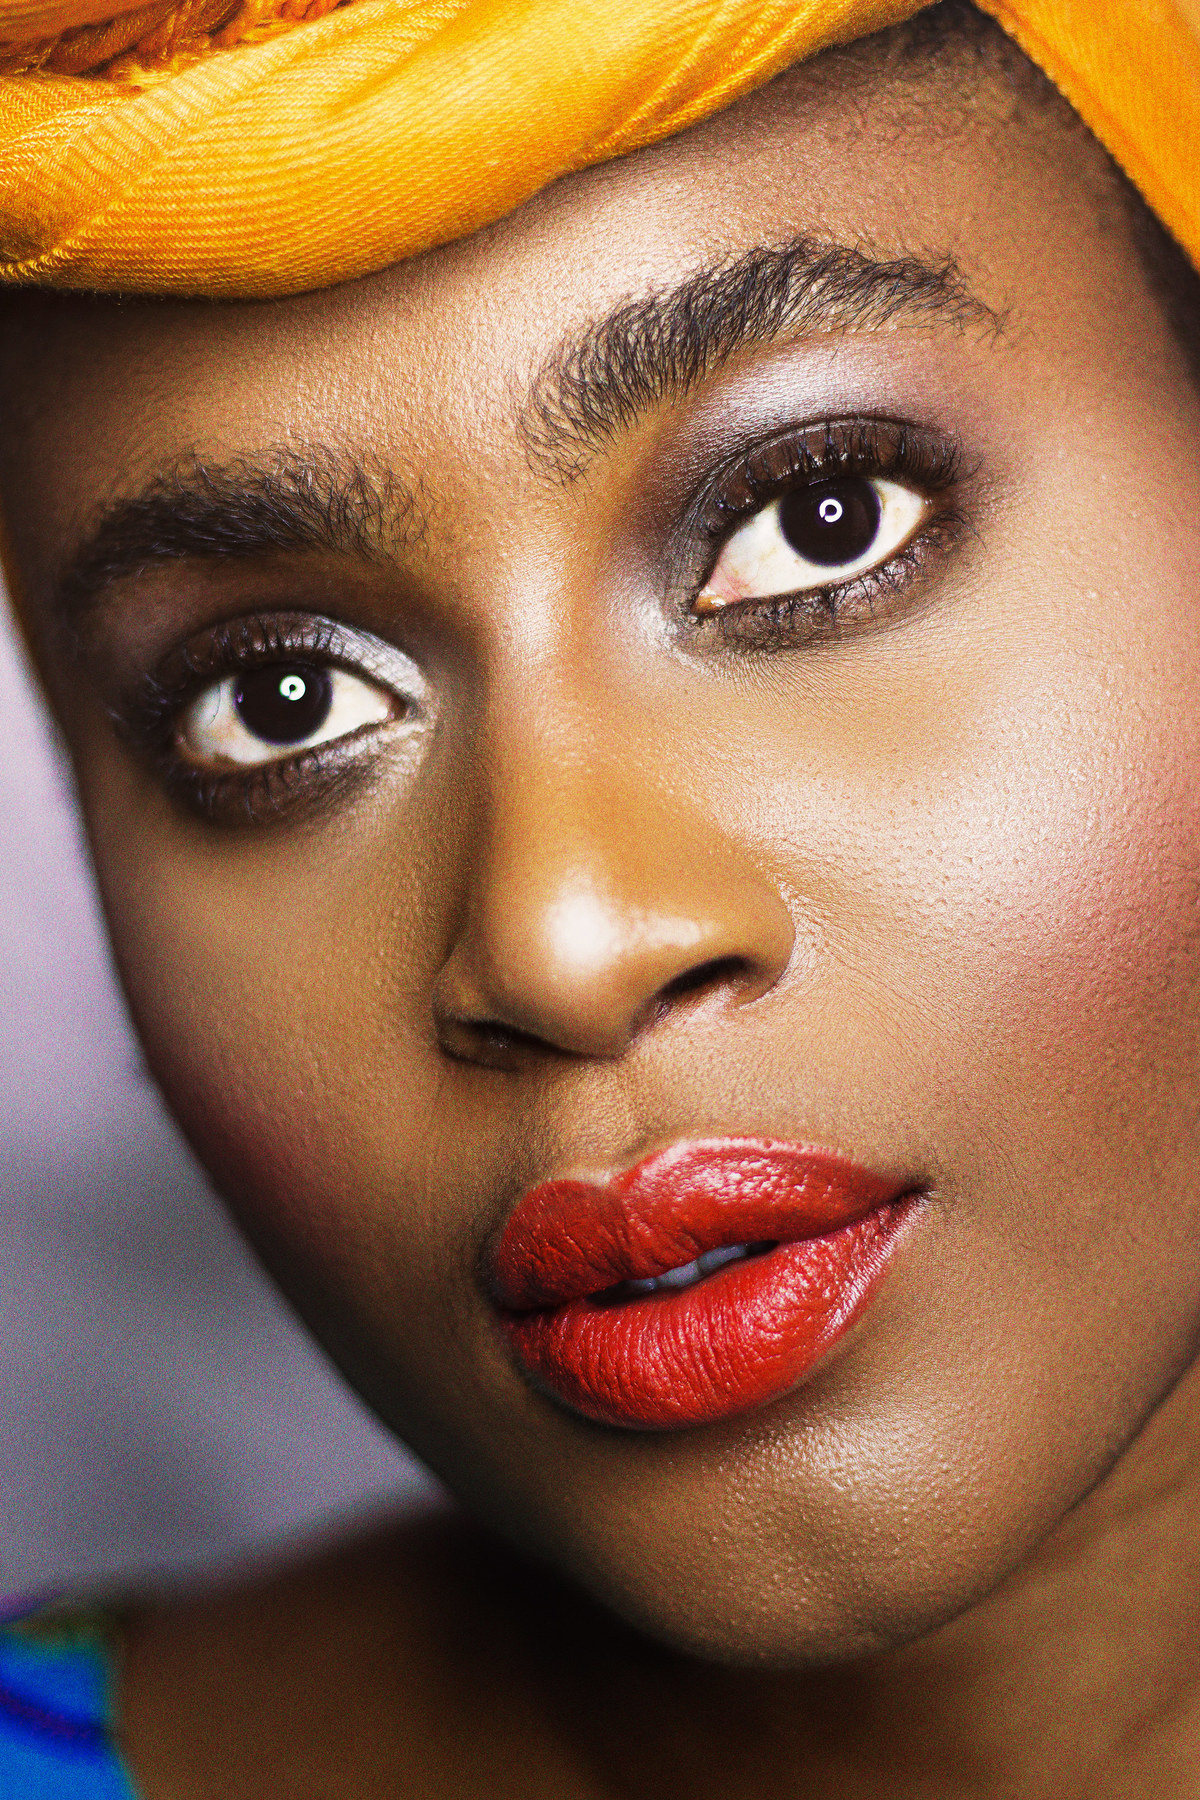 African woman with red YSL lipstick looking up